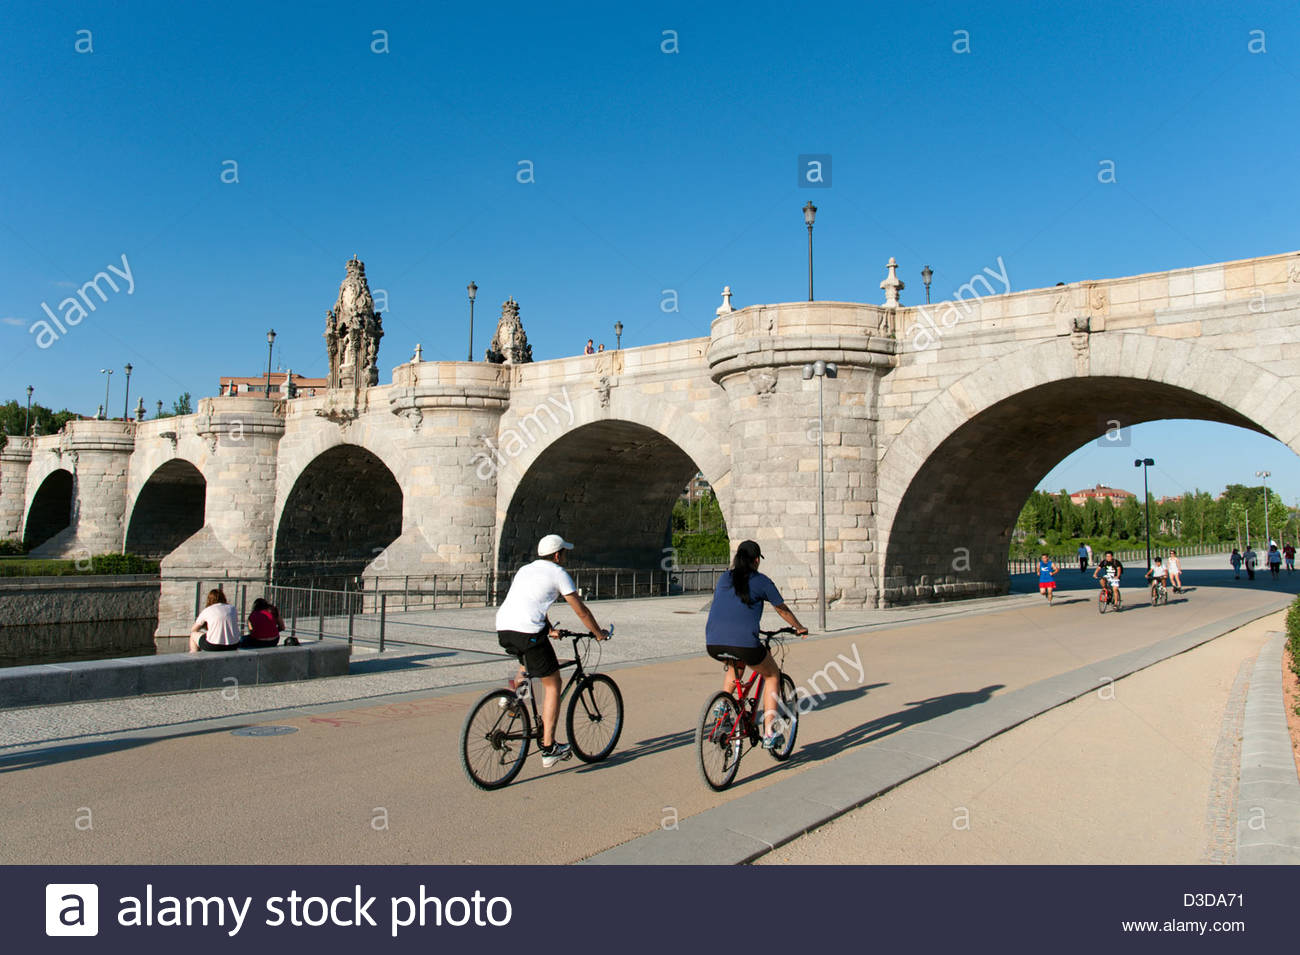 Cyclists on the Madrid Rio Park stretch of the Anillo Verde approaching the Puente de Toledo, Madrid, Spain - Stock Image